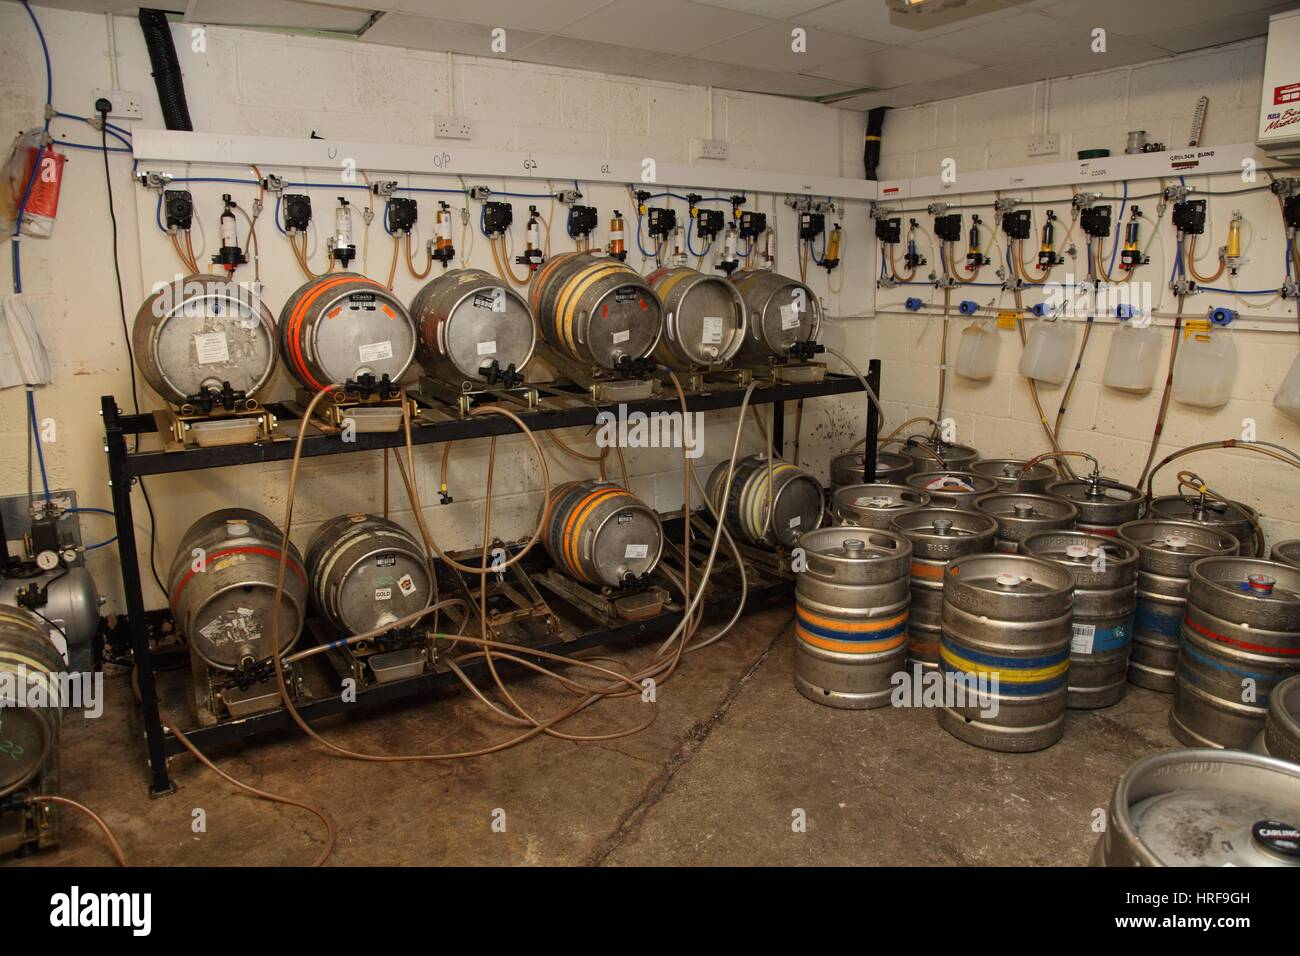 Beer Cellar Stock Photos Images Alamy Wiring Diagram For Keg Kegs In The Of A Pub Image